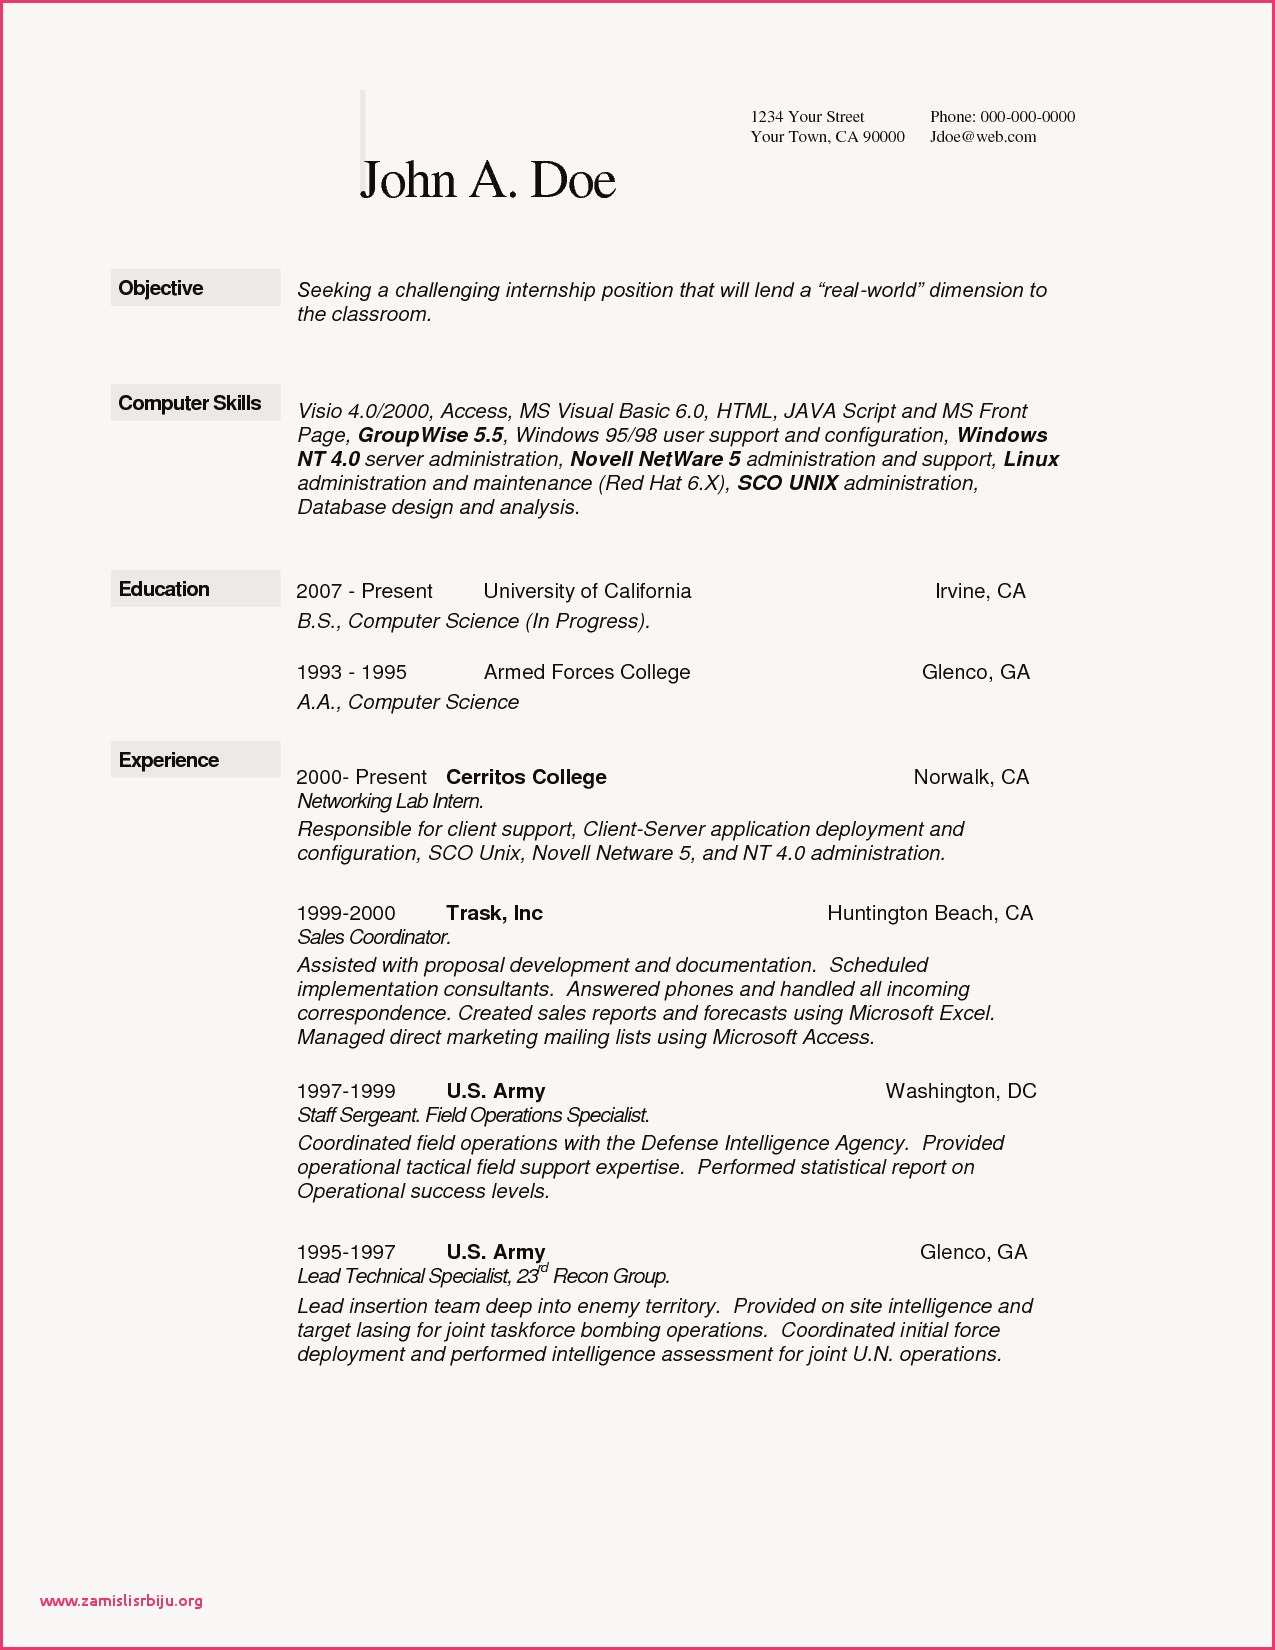 letter of support for medicaid template example-Letter Support Example for Medicaid Pharmacy Tech Resume Template Fresh Obama Resume 0d Pharmacy 1-n